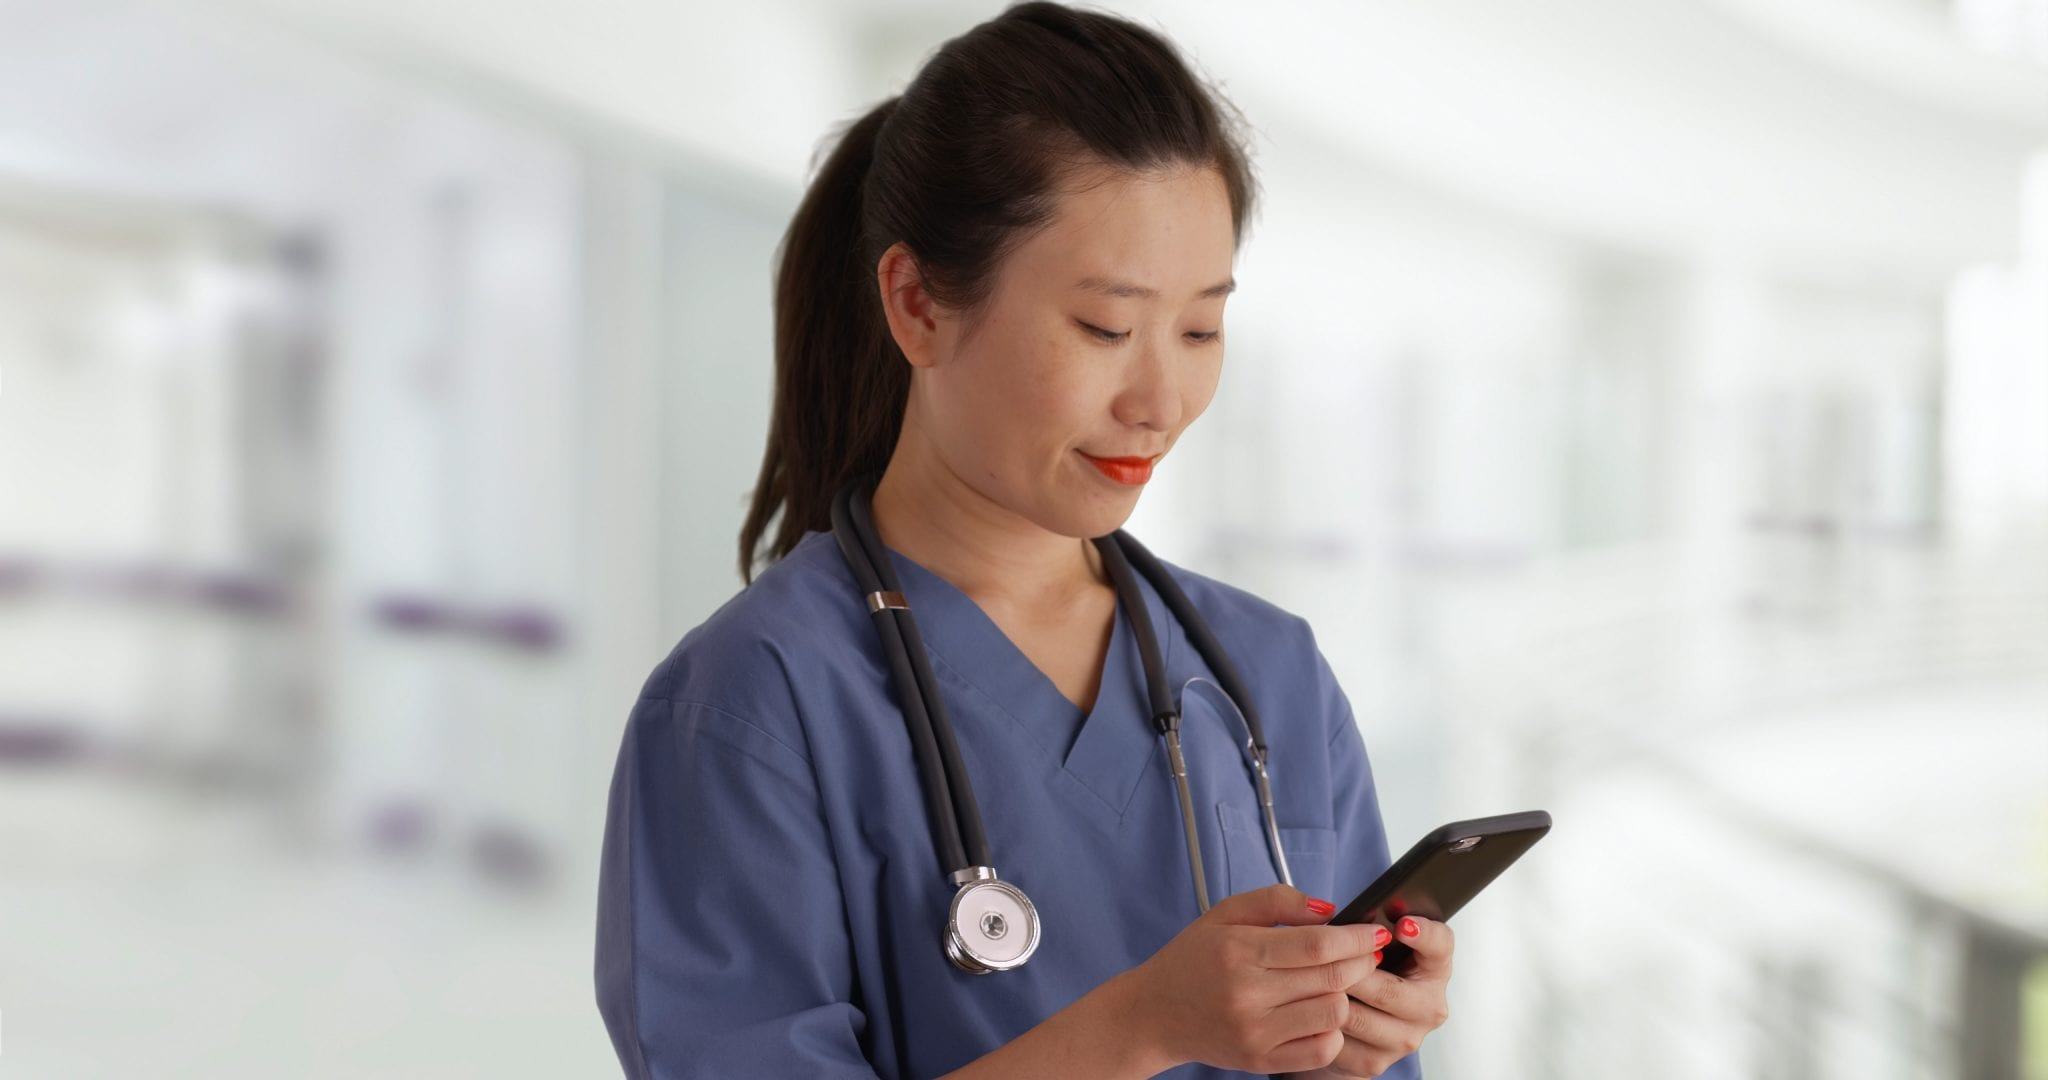 Apps for Medical Professionals